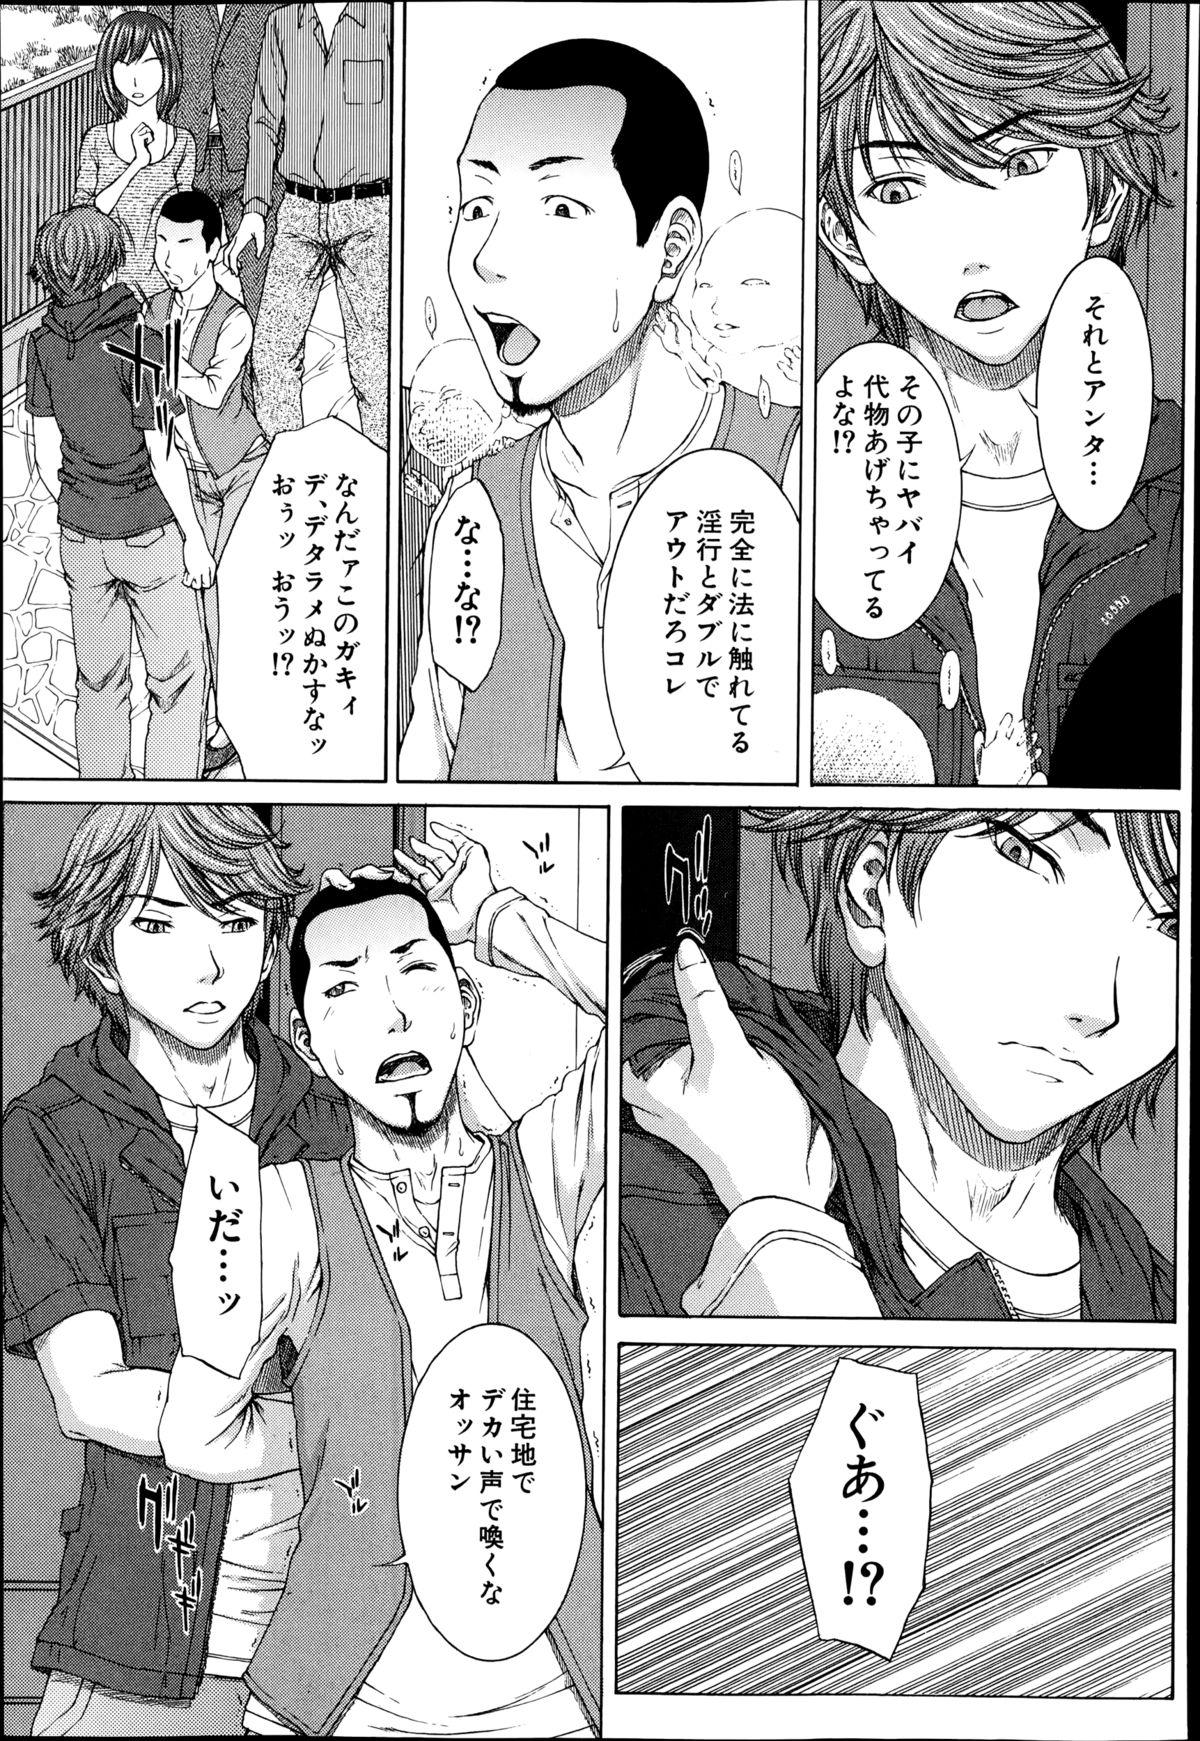 BUSTER COMIC 2014-09 260